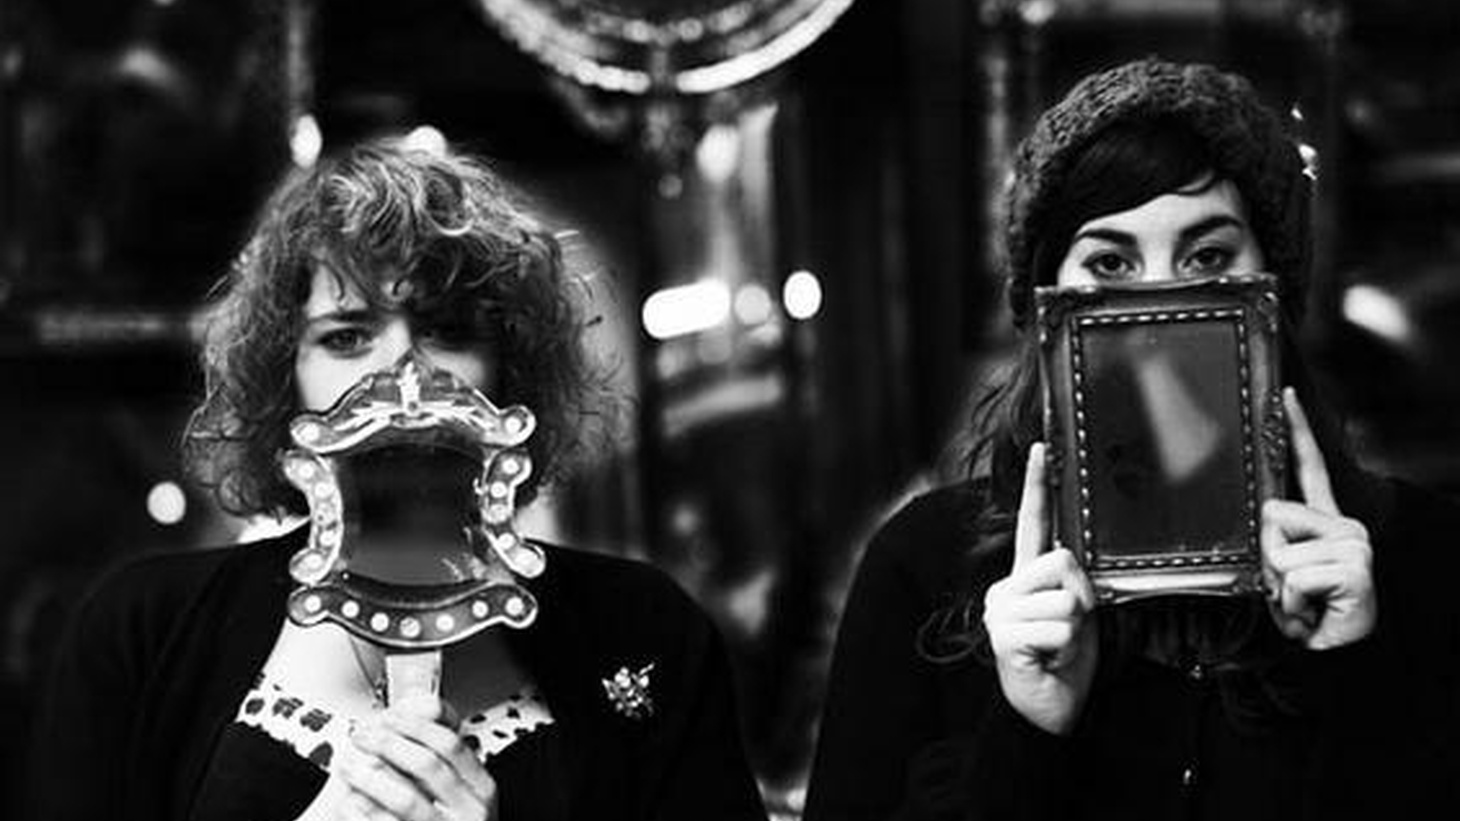 Brighton bohemian trio Peggy Sue deconstructs everything from folk to soul. They wind their way through a myriad of handmade instruments and wry lyrics when they join Morning Becomes Eclectic at 11:15am.